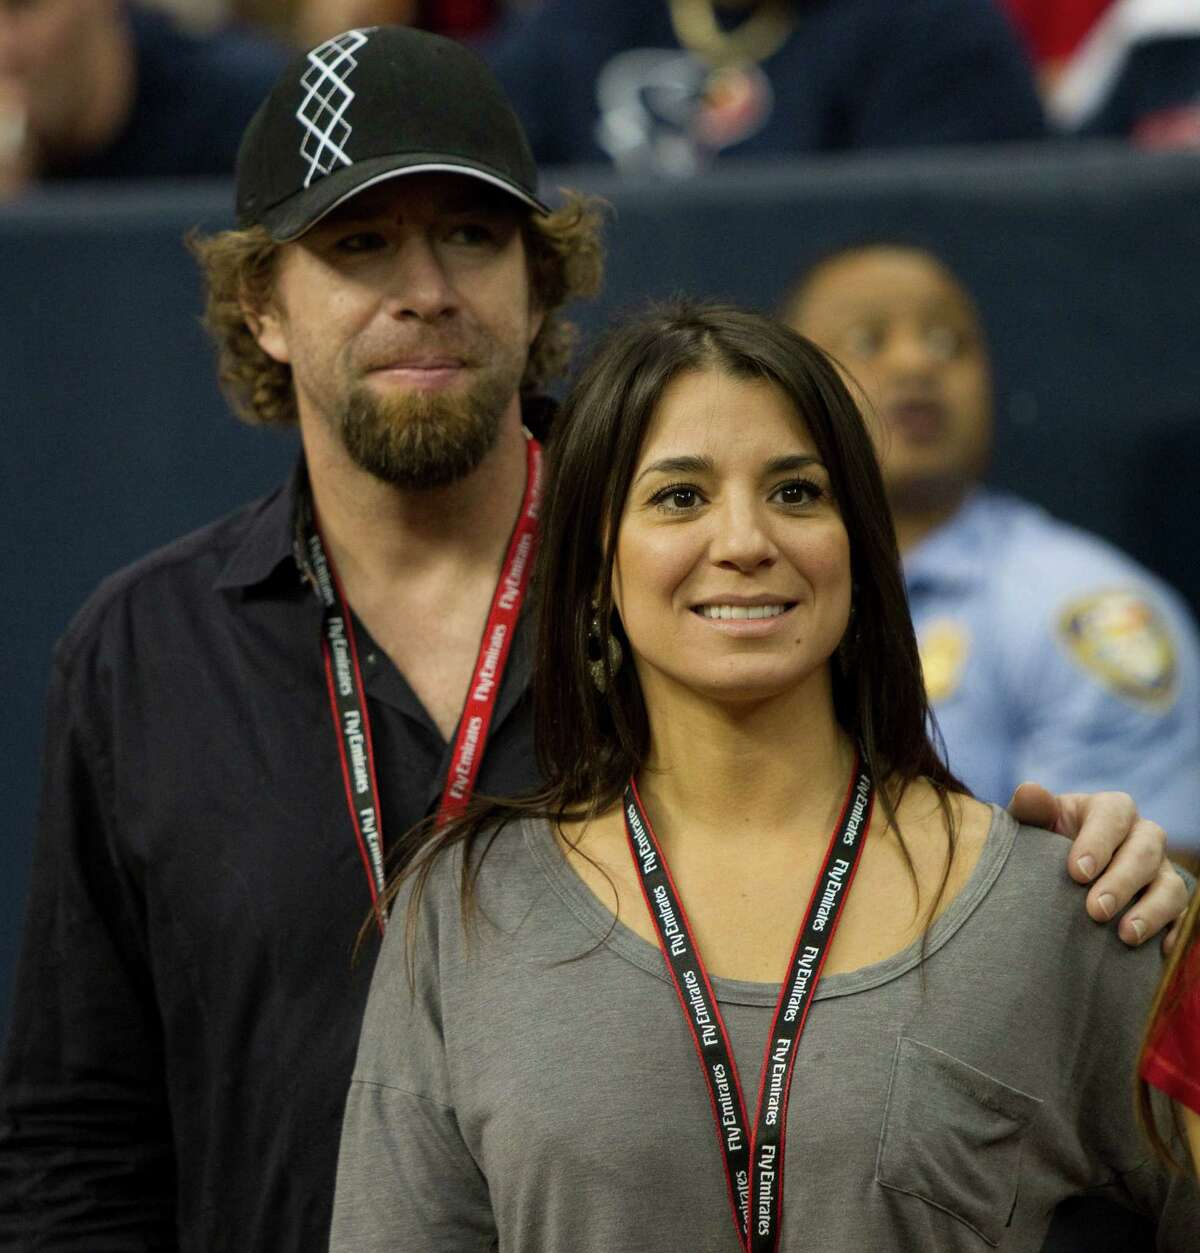 Rachel Brown has been linked to former Houston Astro Jeff Bagwell. The two attended a Texans game in 2011.